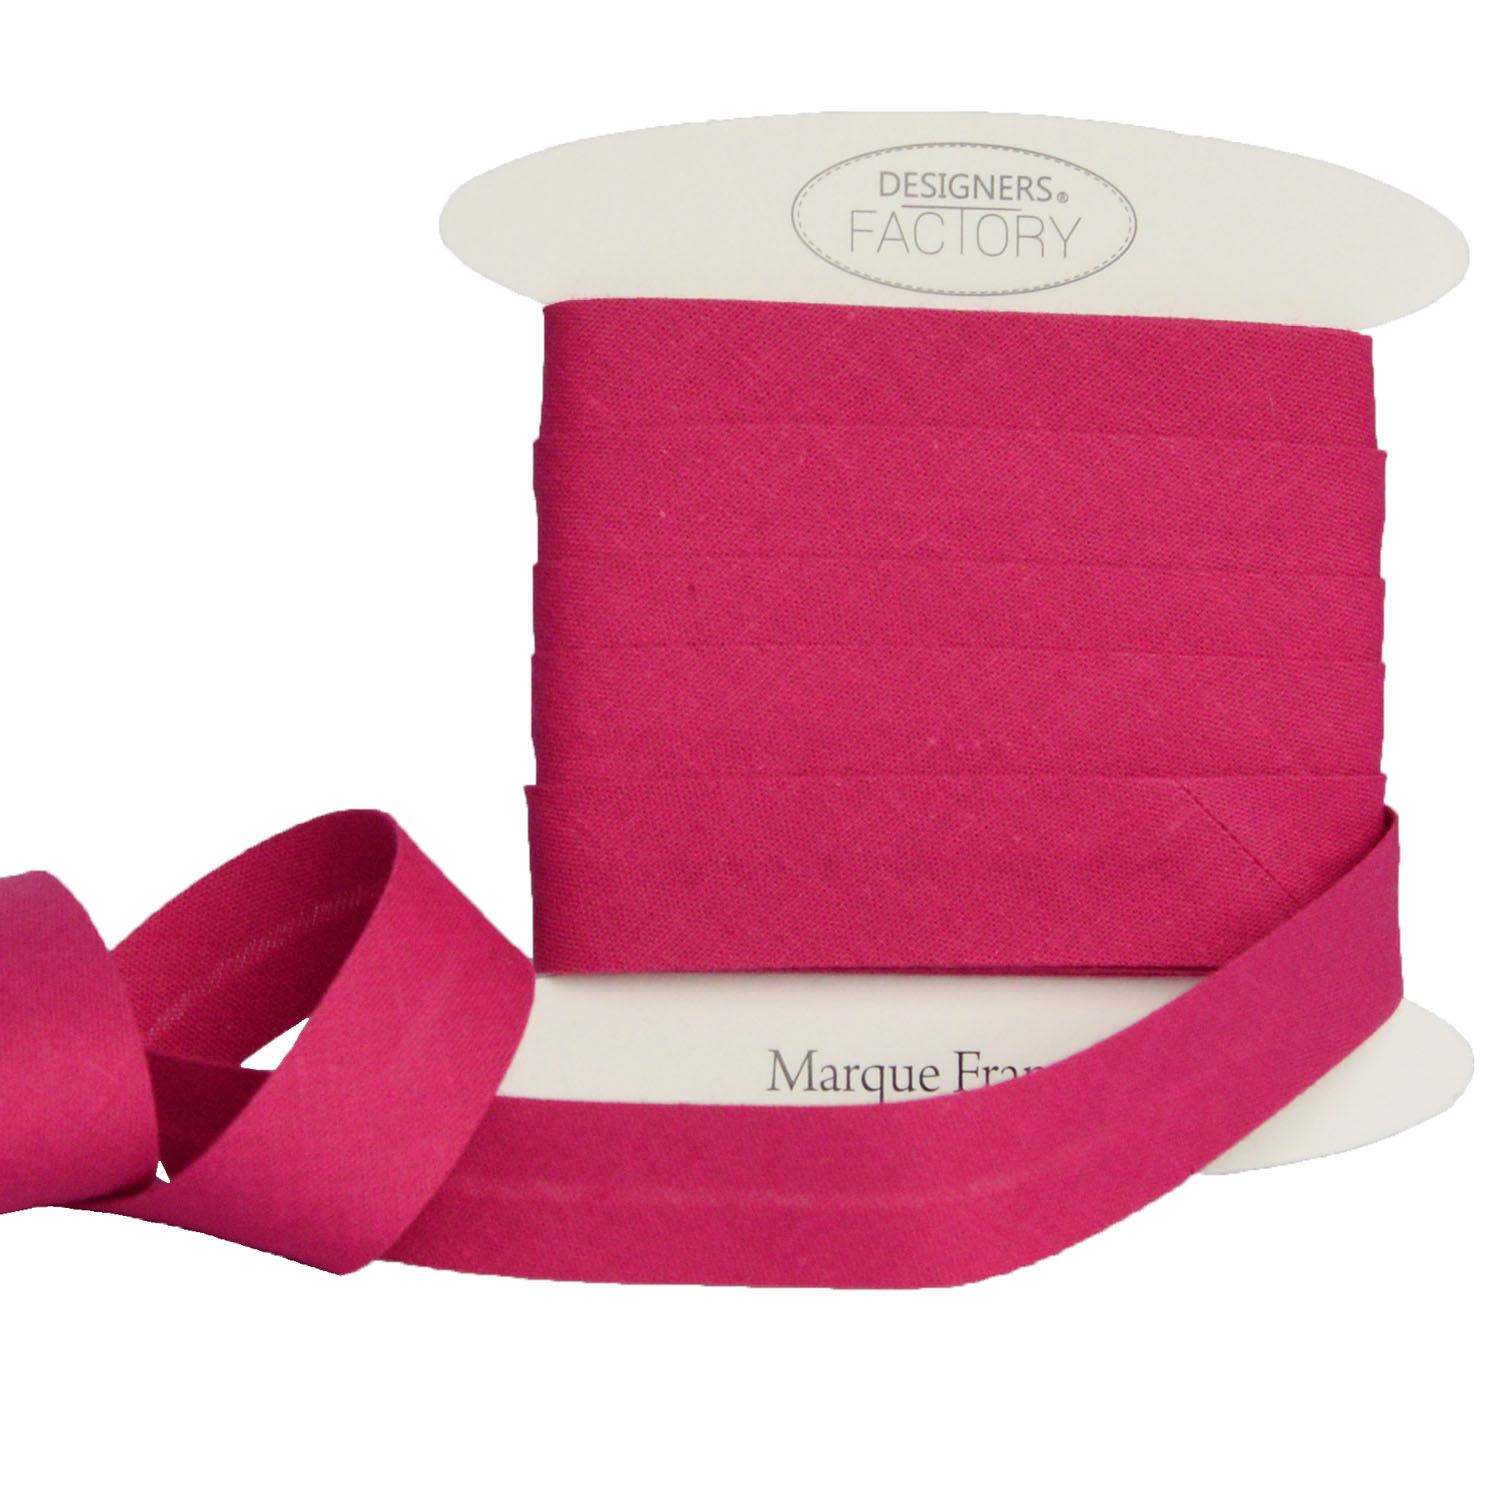 designers-factory Beautiful Quality Plain Cotton Bias Binding By 5 meters, Red available in several colours and two sizes Cotton Bias Binding